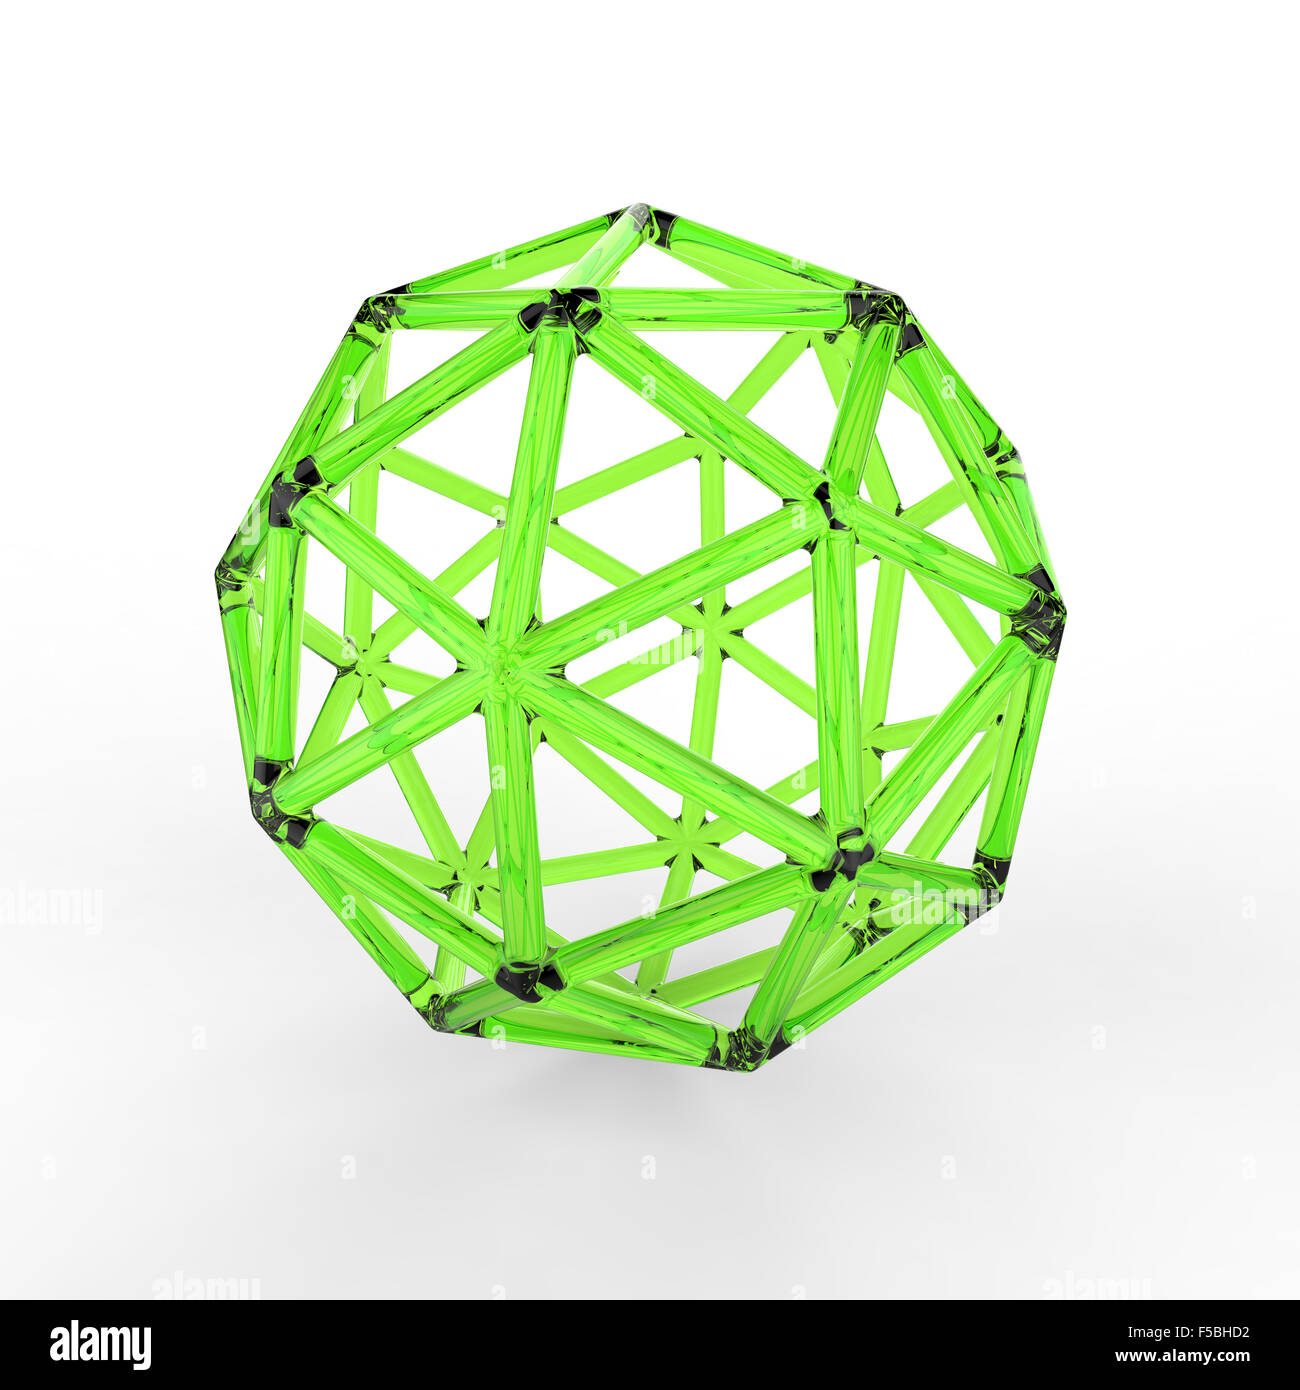 3d green plastic glass pentakis dodecahedron with transparent frame on white background - Stock Image